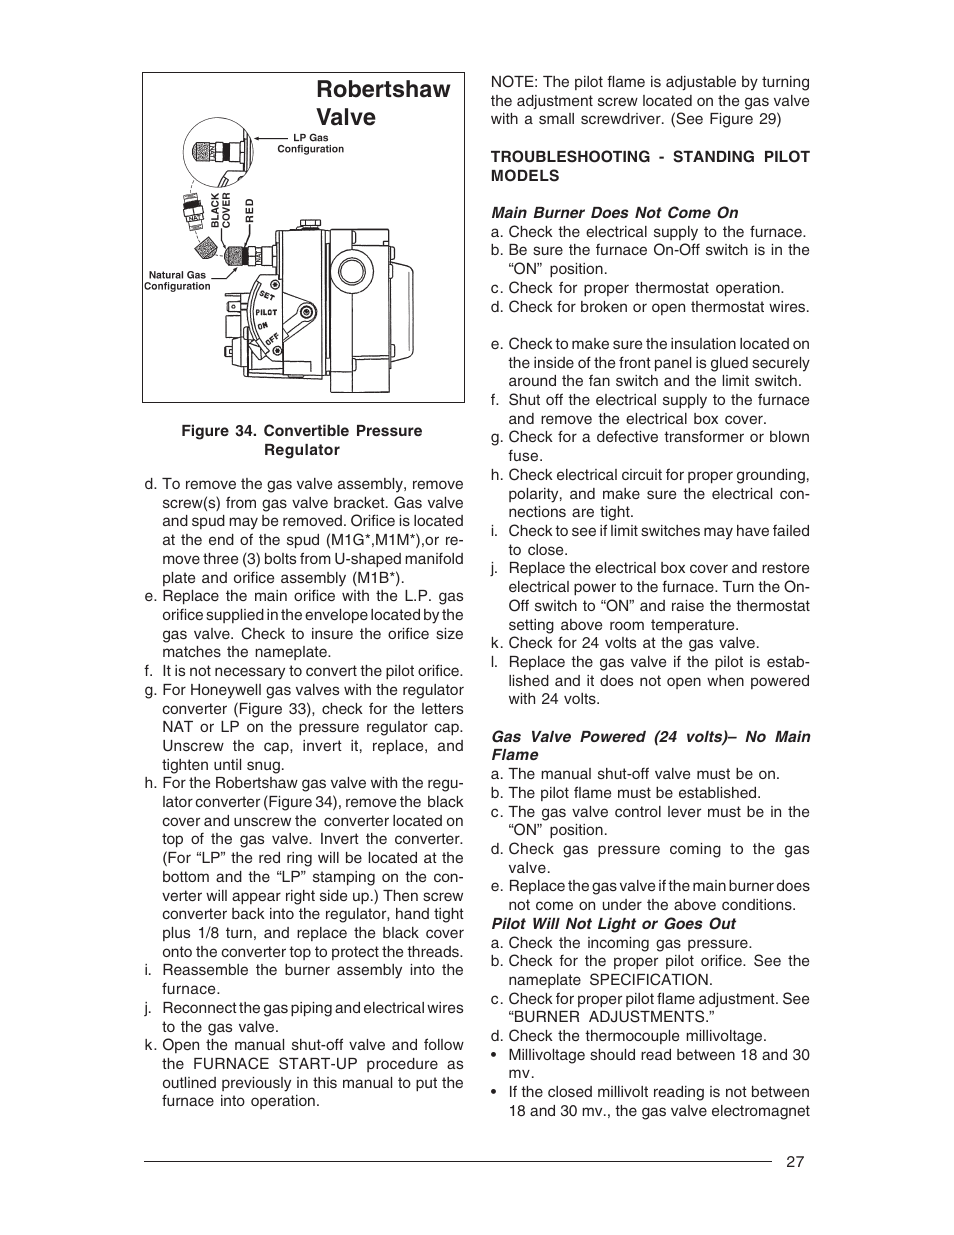 Wiring Diagram Epg Heater Robertshaw And Schematics Gas Valve Famous Collection Everything